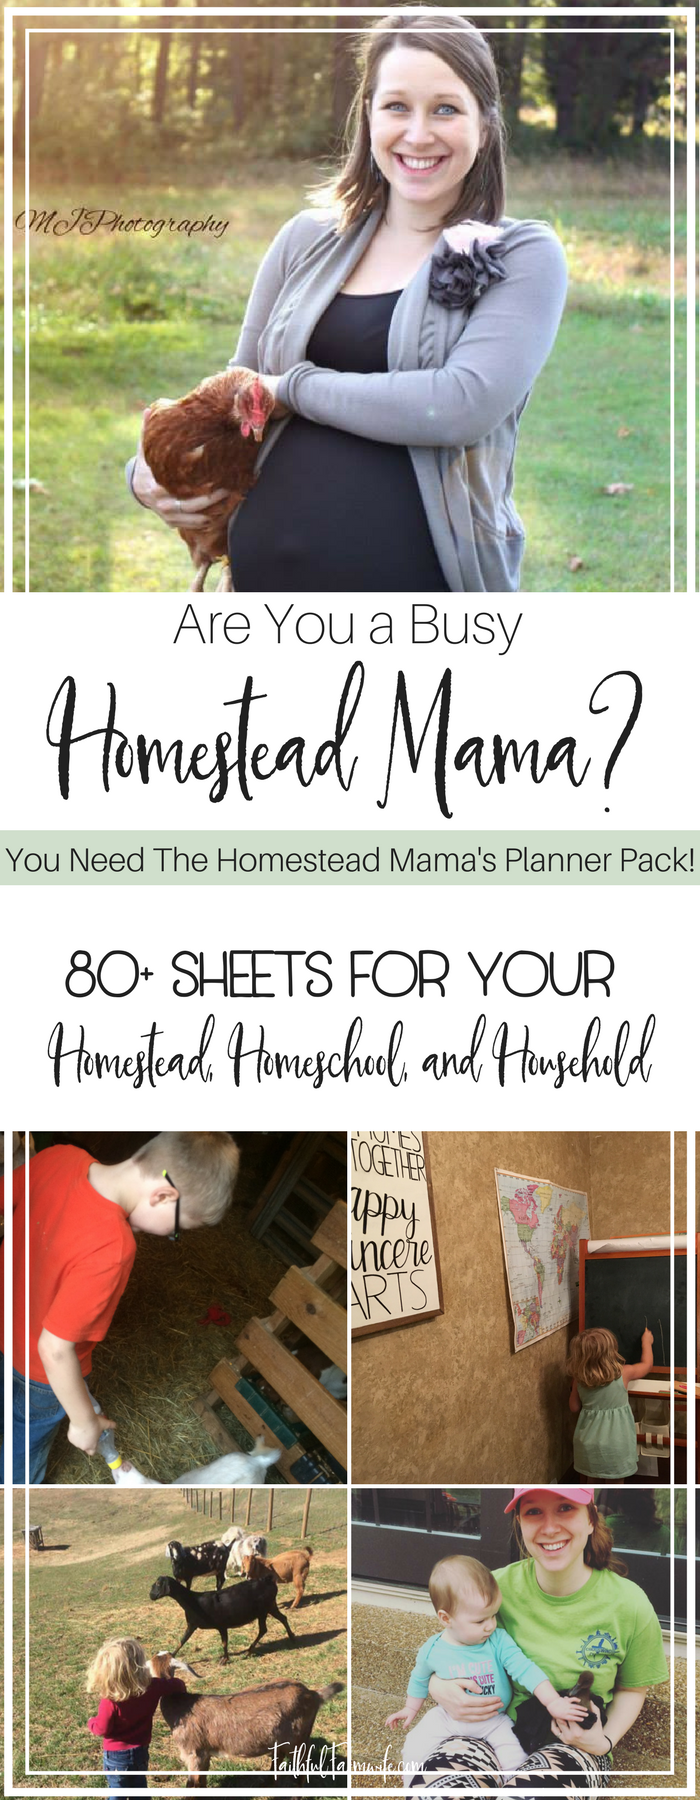 Homestead Mama\'s Planning Pack | Homeschool, Farming and Homesteads